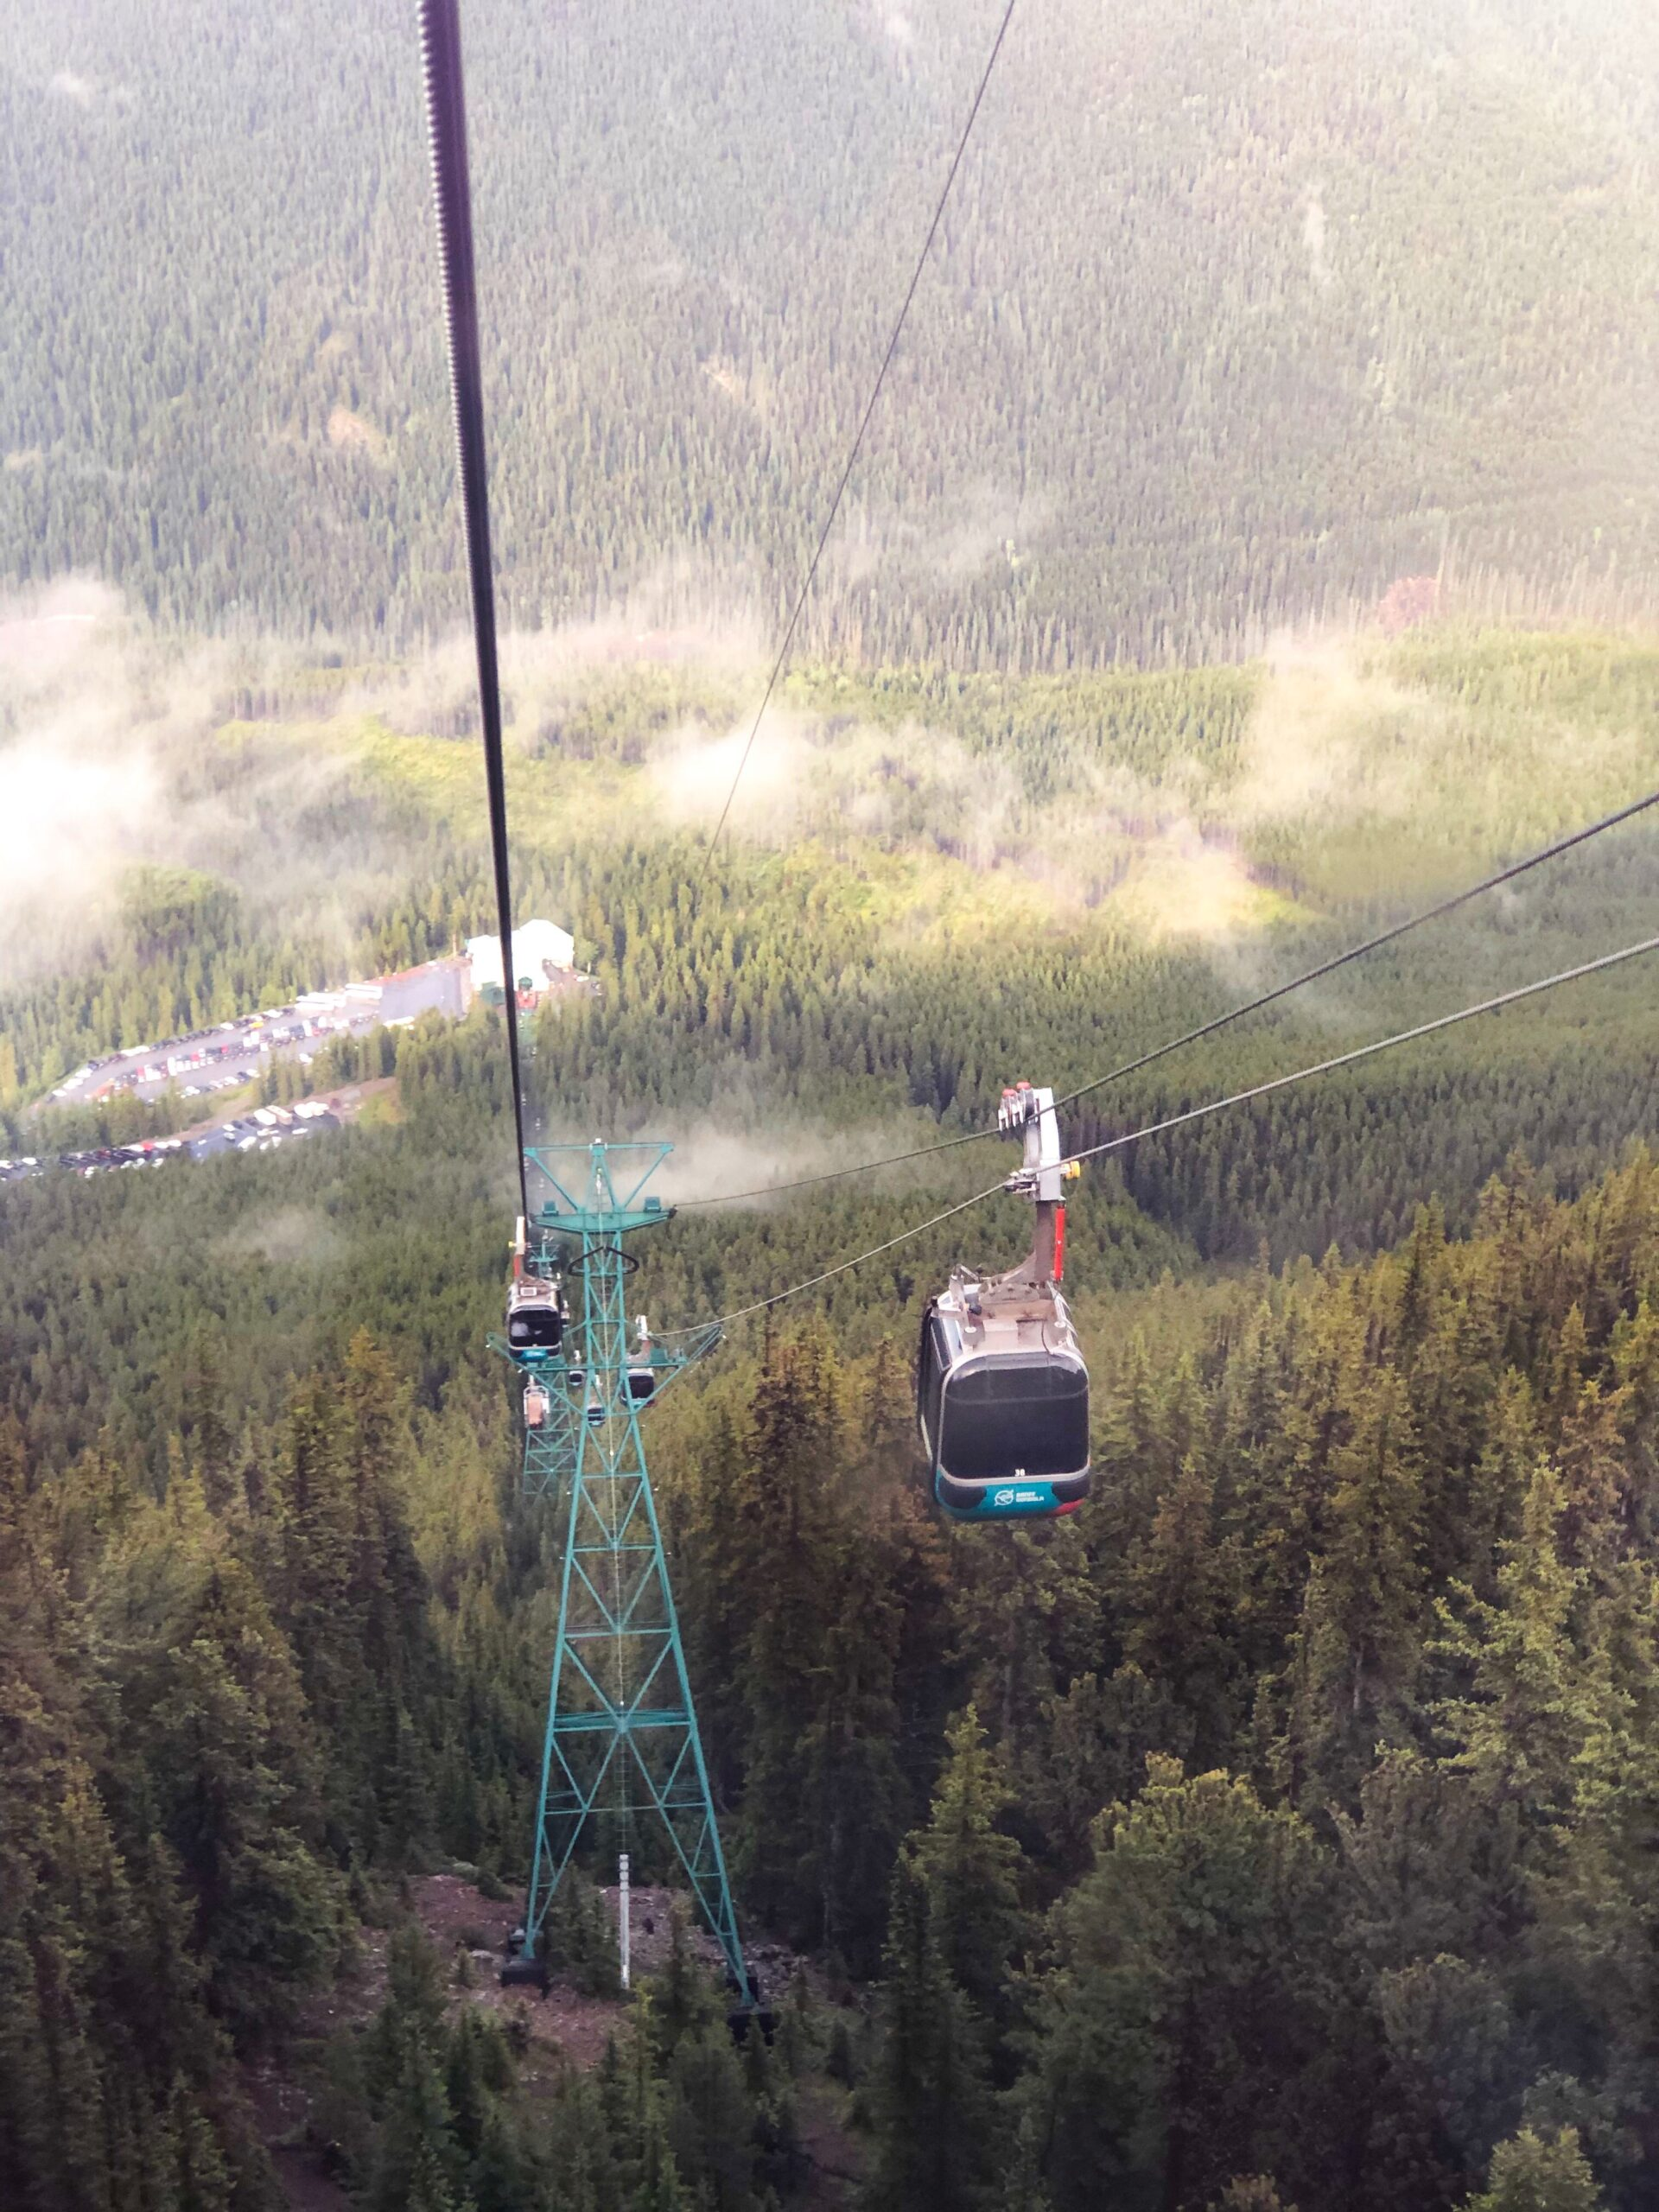 Banff Travel Guide- Banff Gondola on Livin' Life with Style